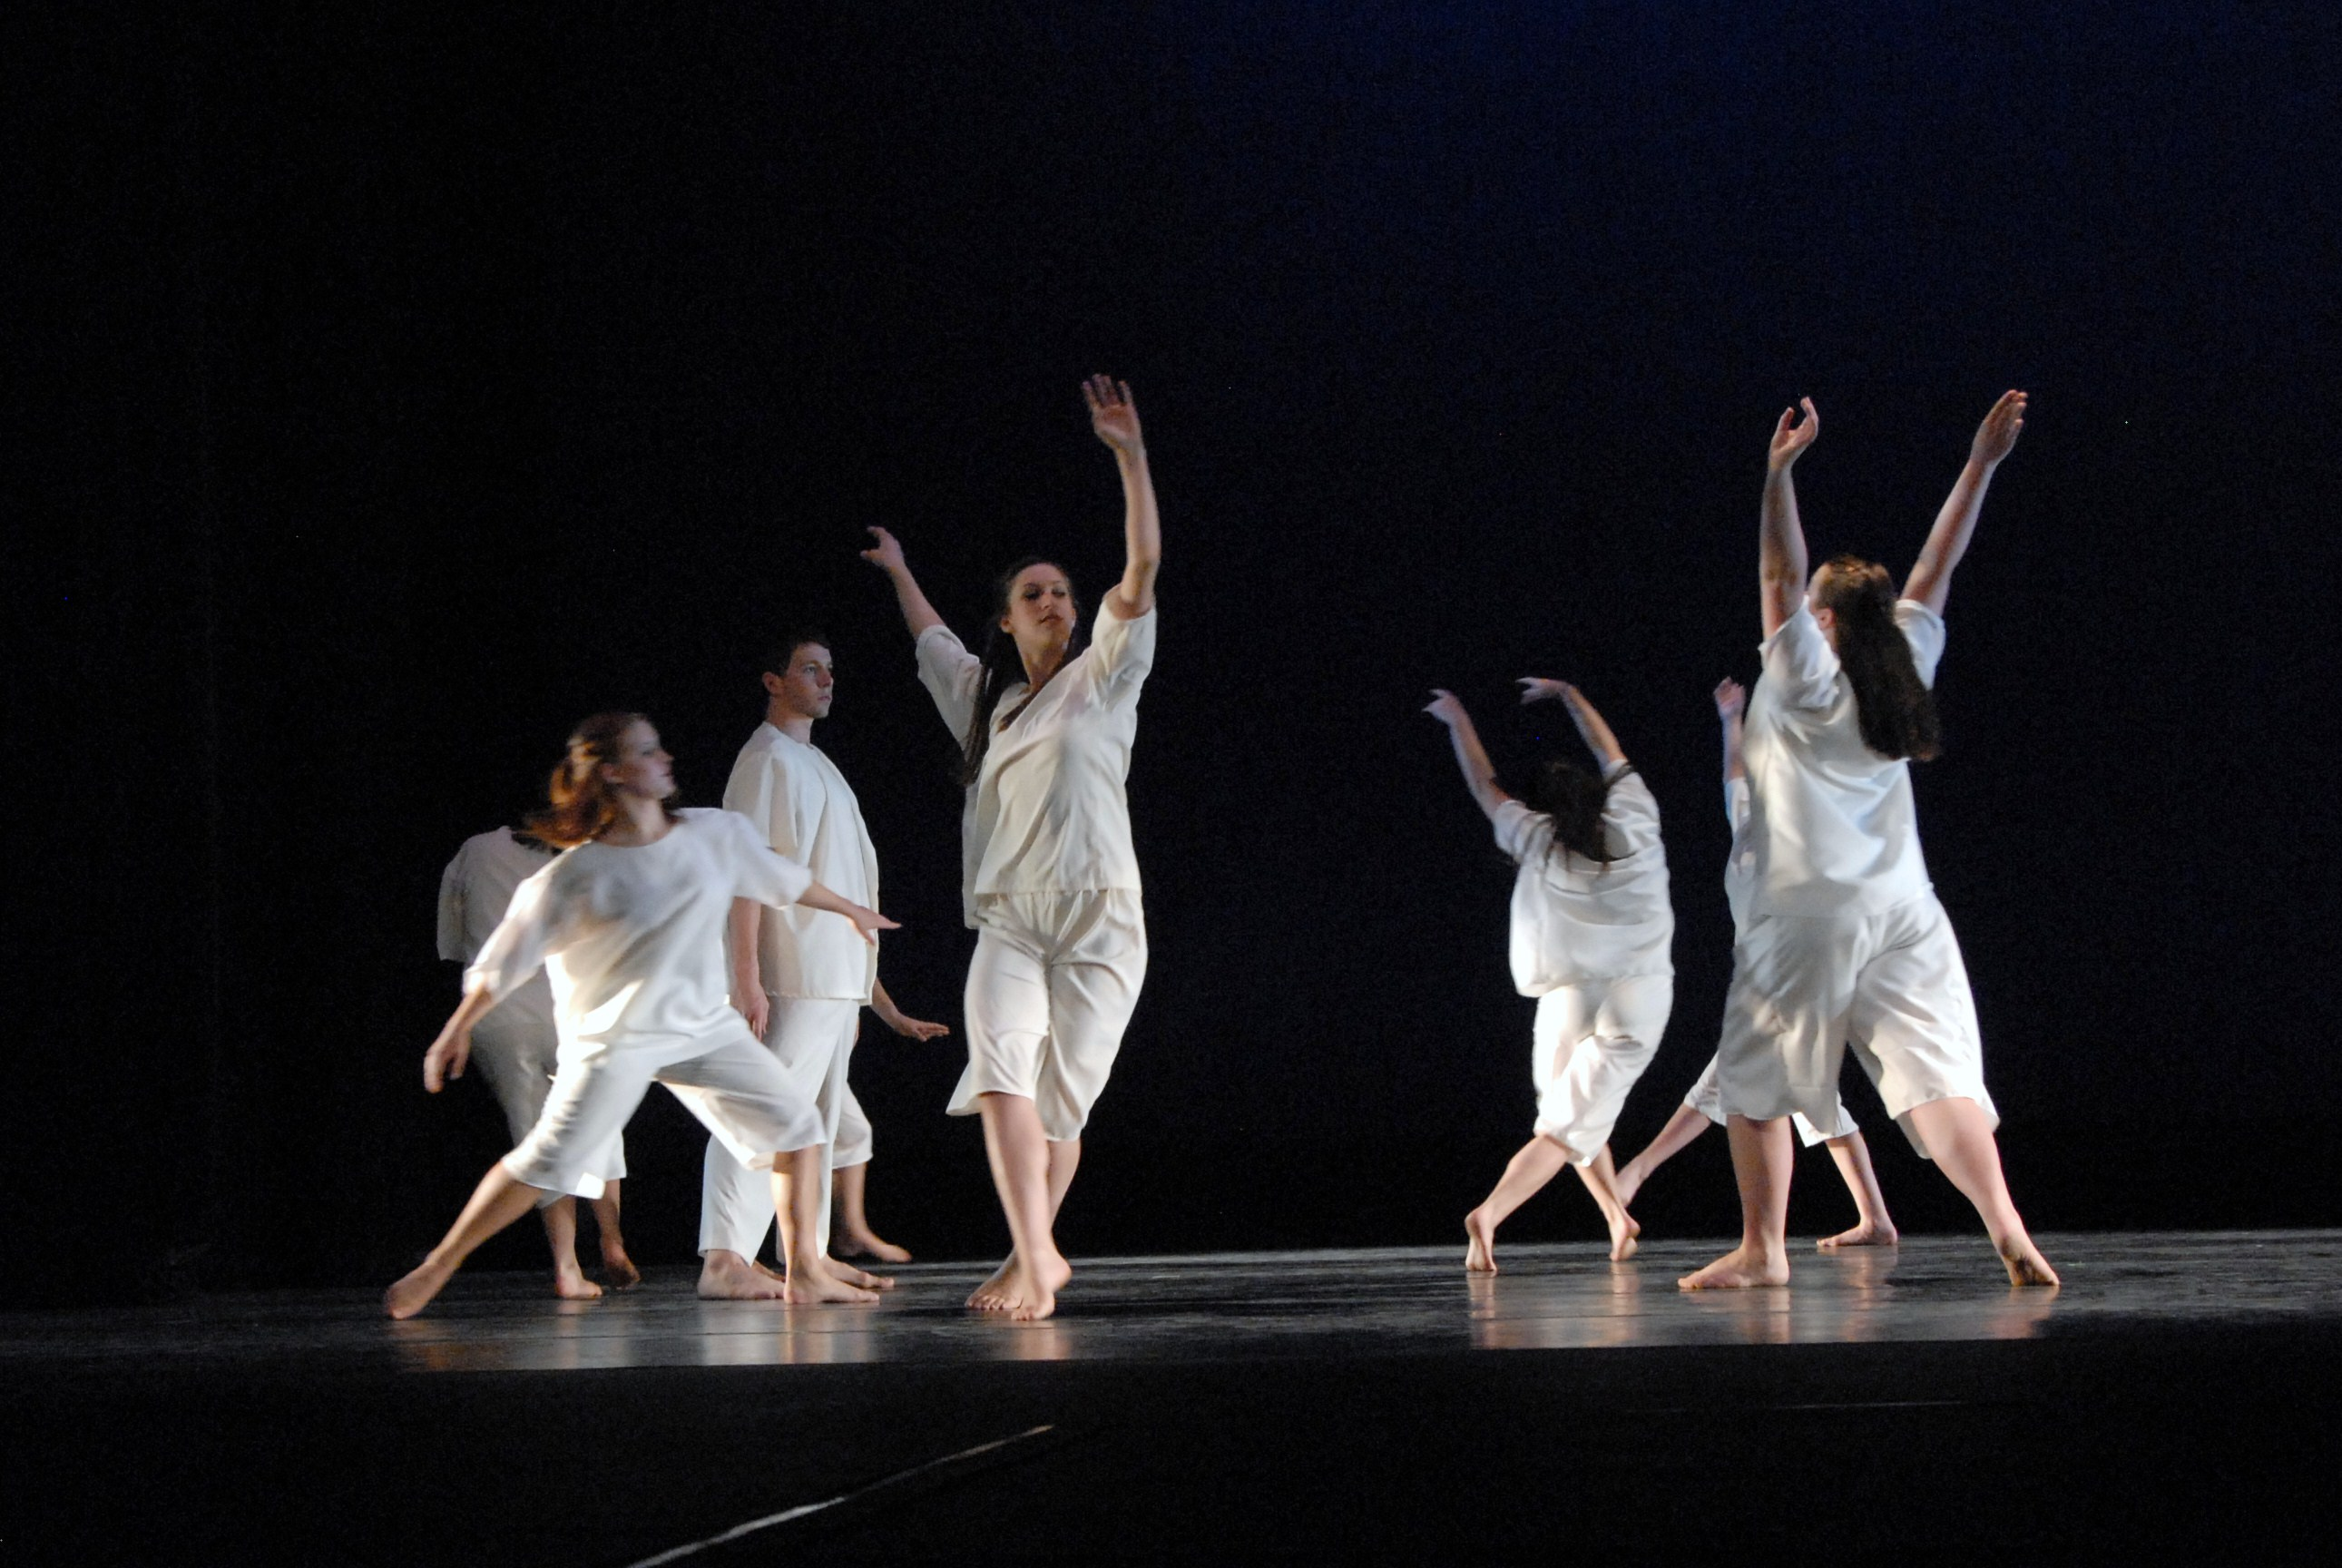 Multiple dancers on stage in white